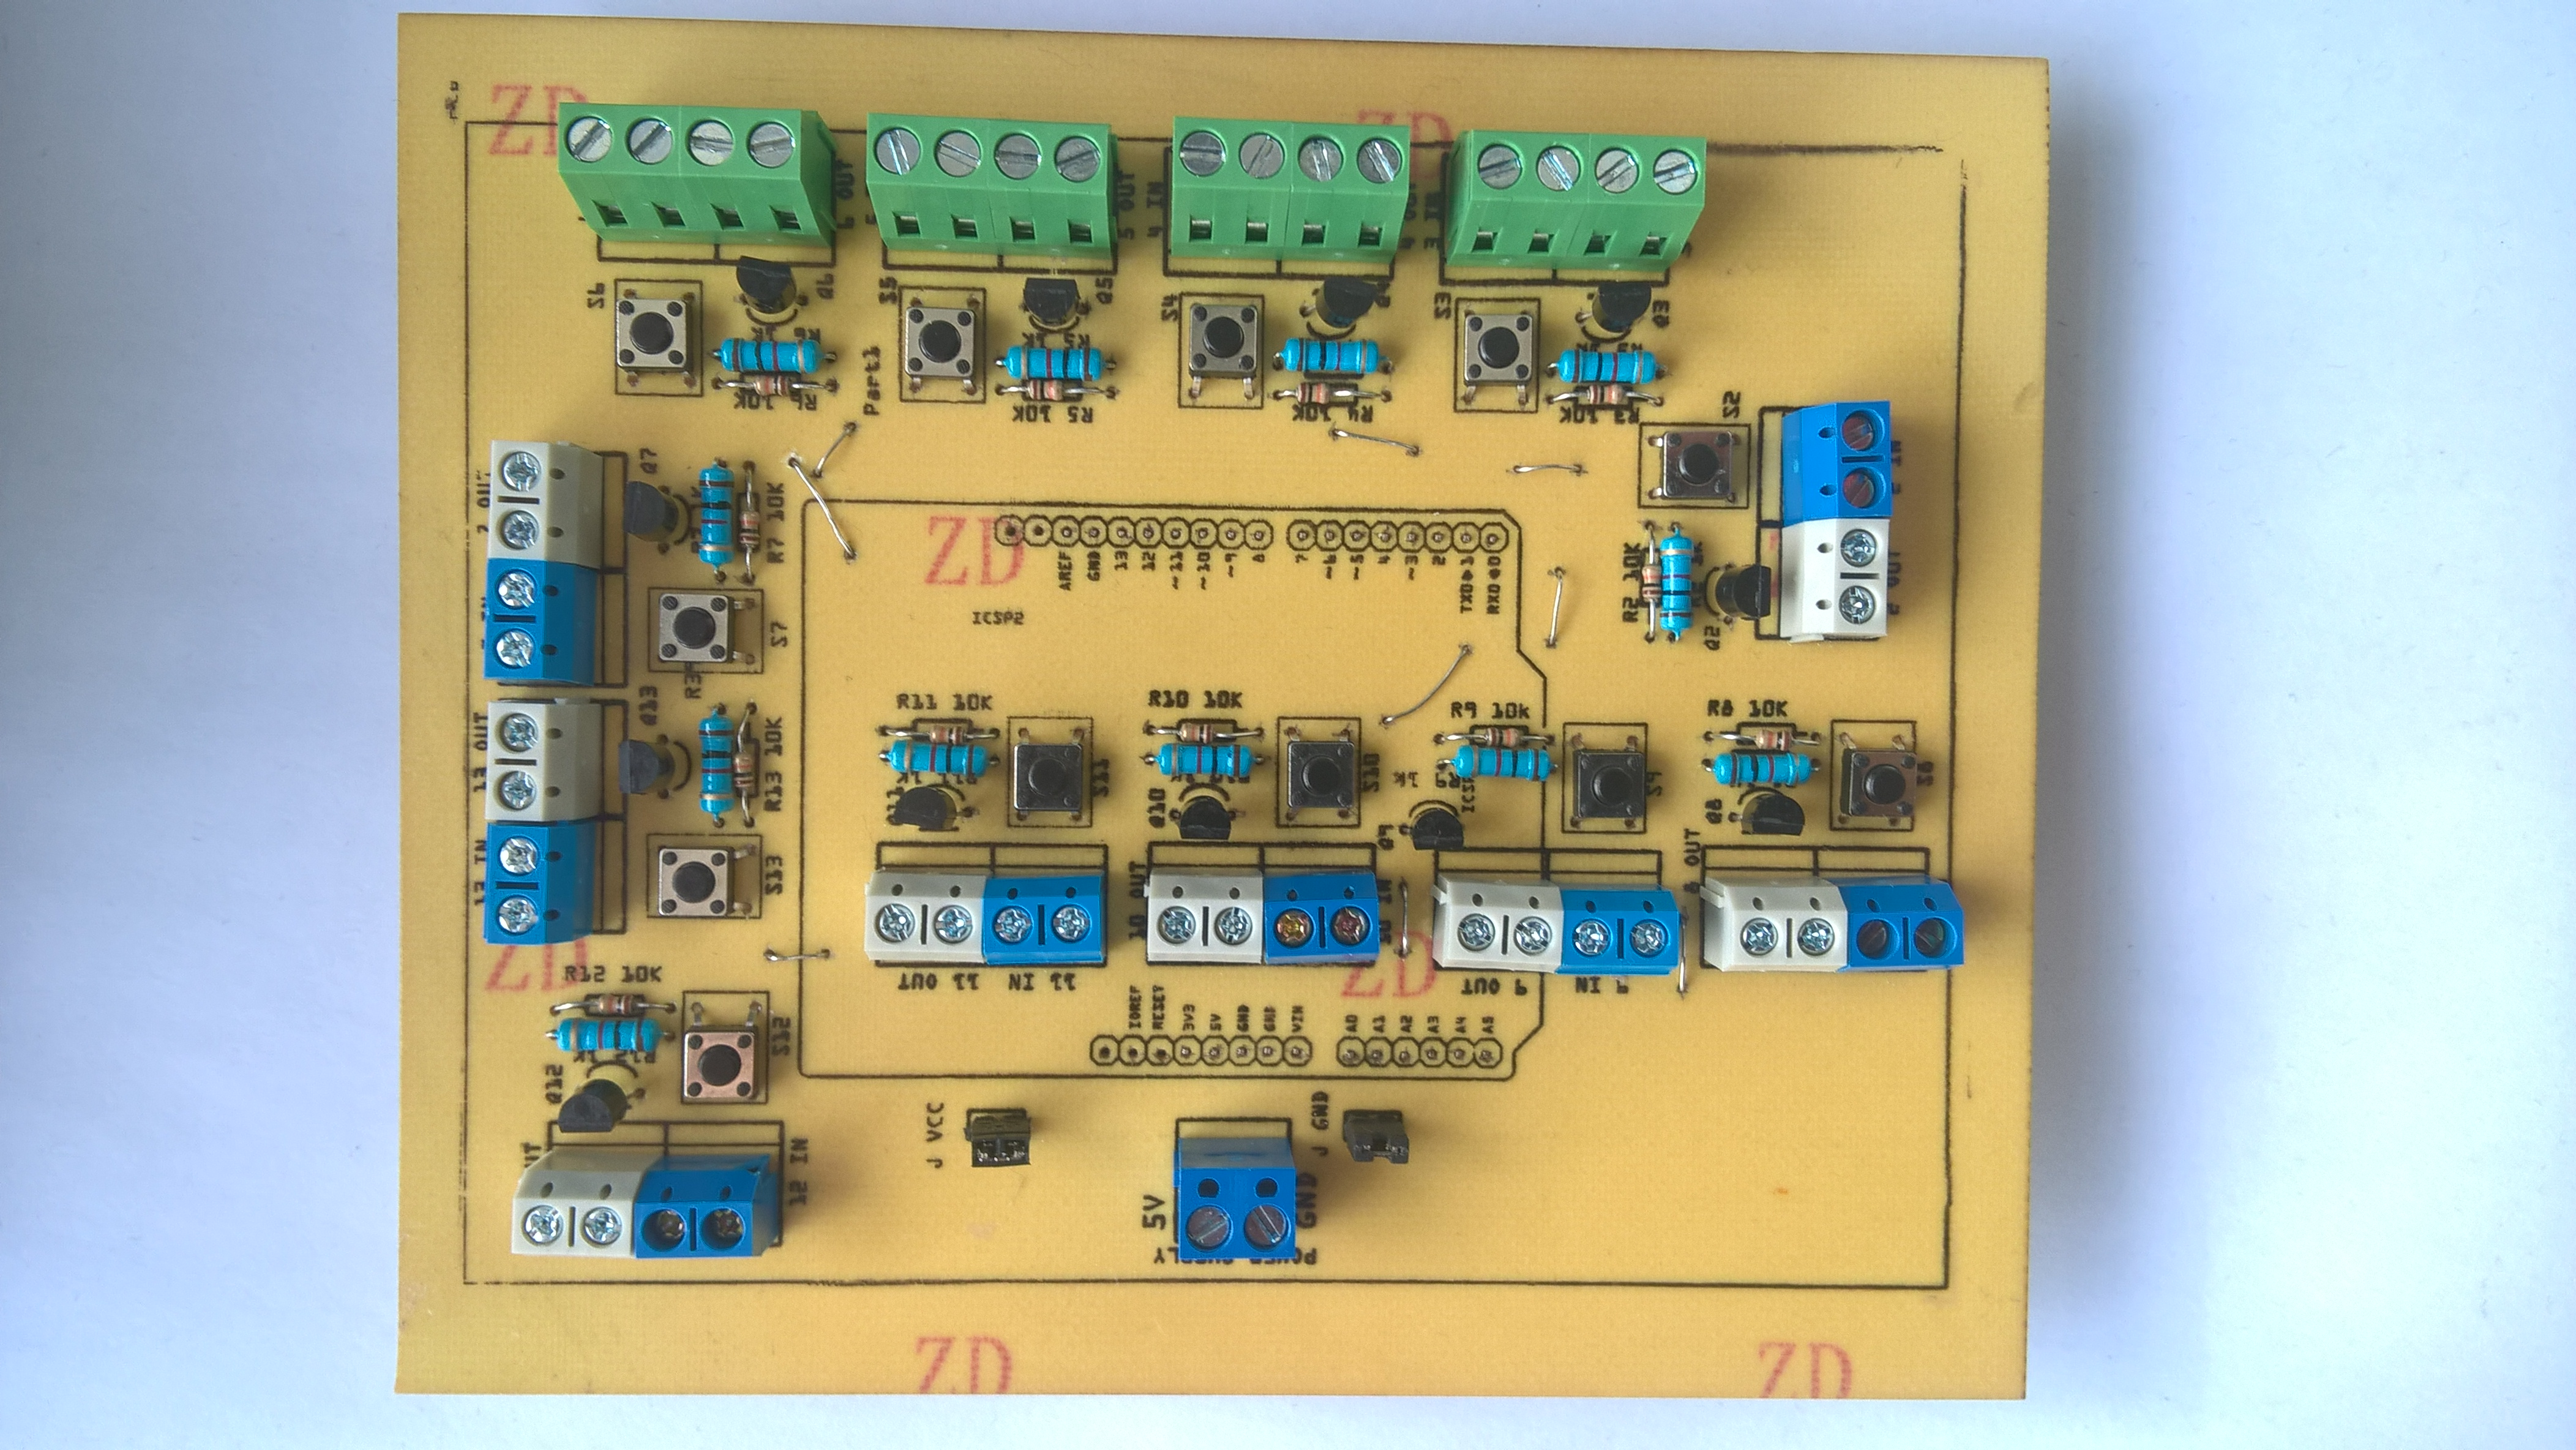 How to make a homemade PCB (shield for